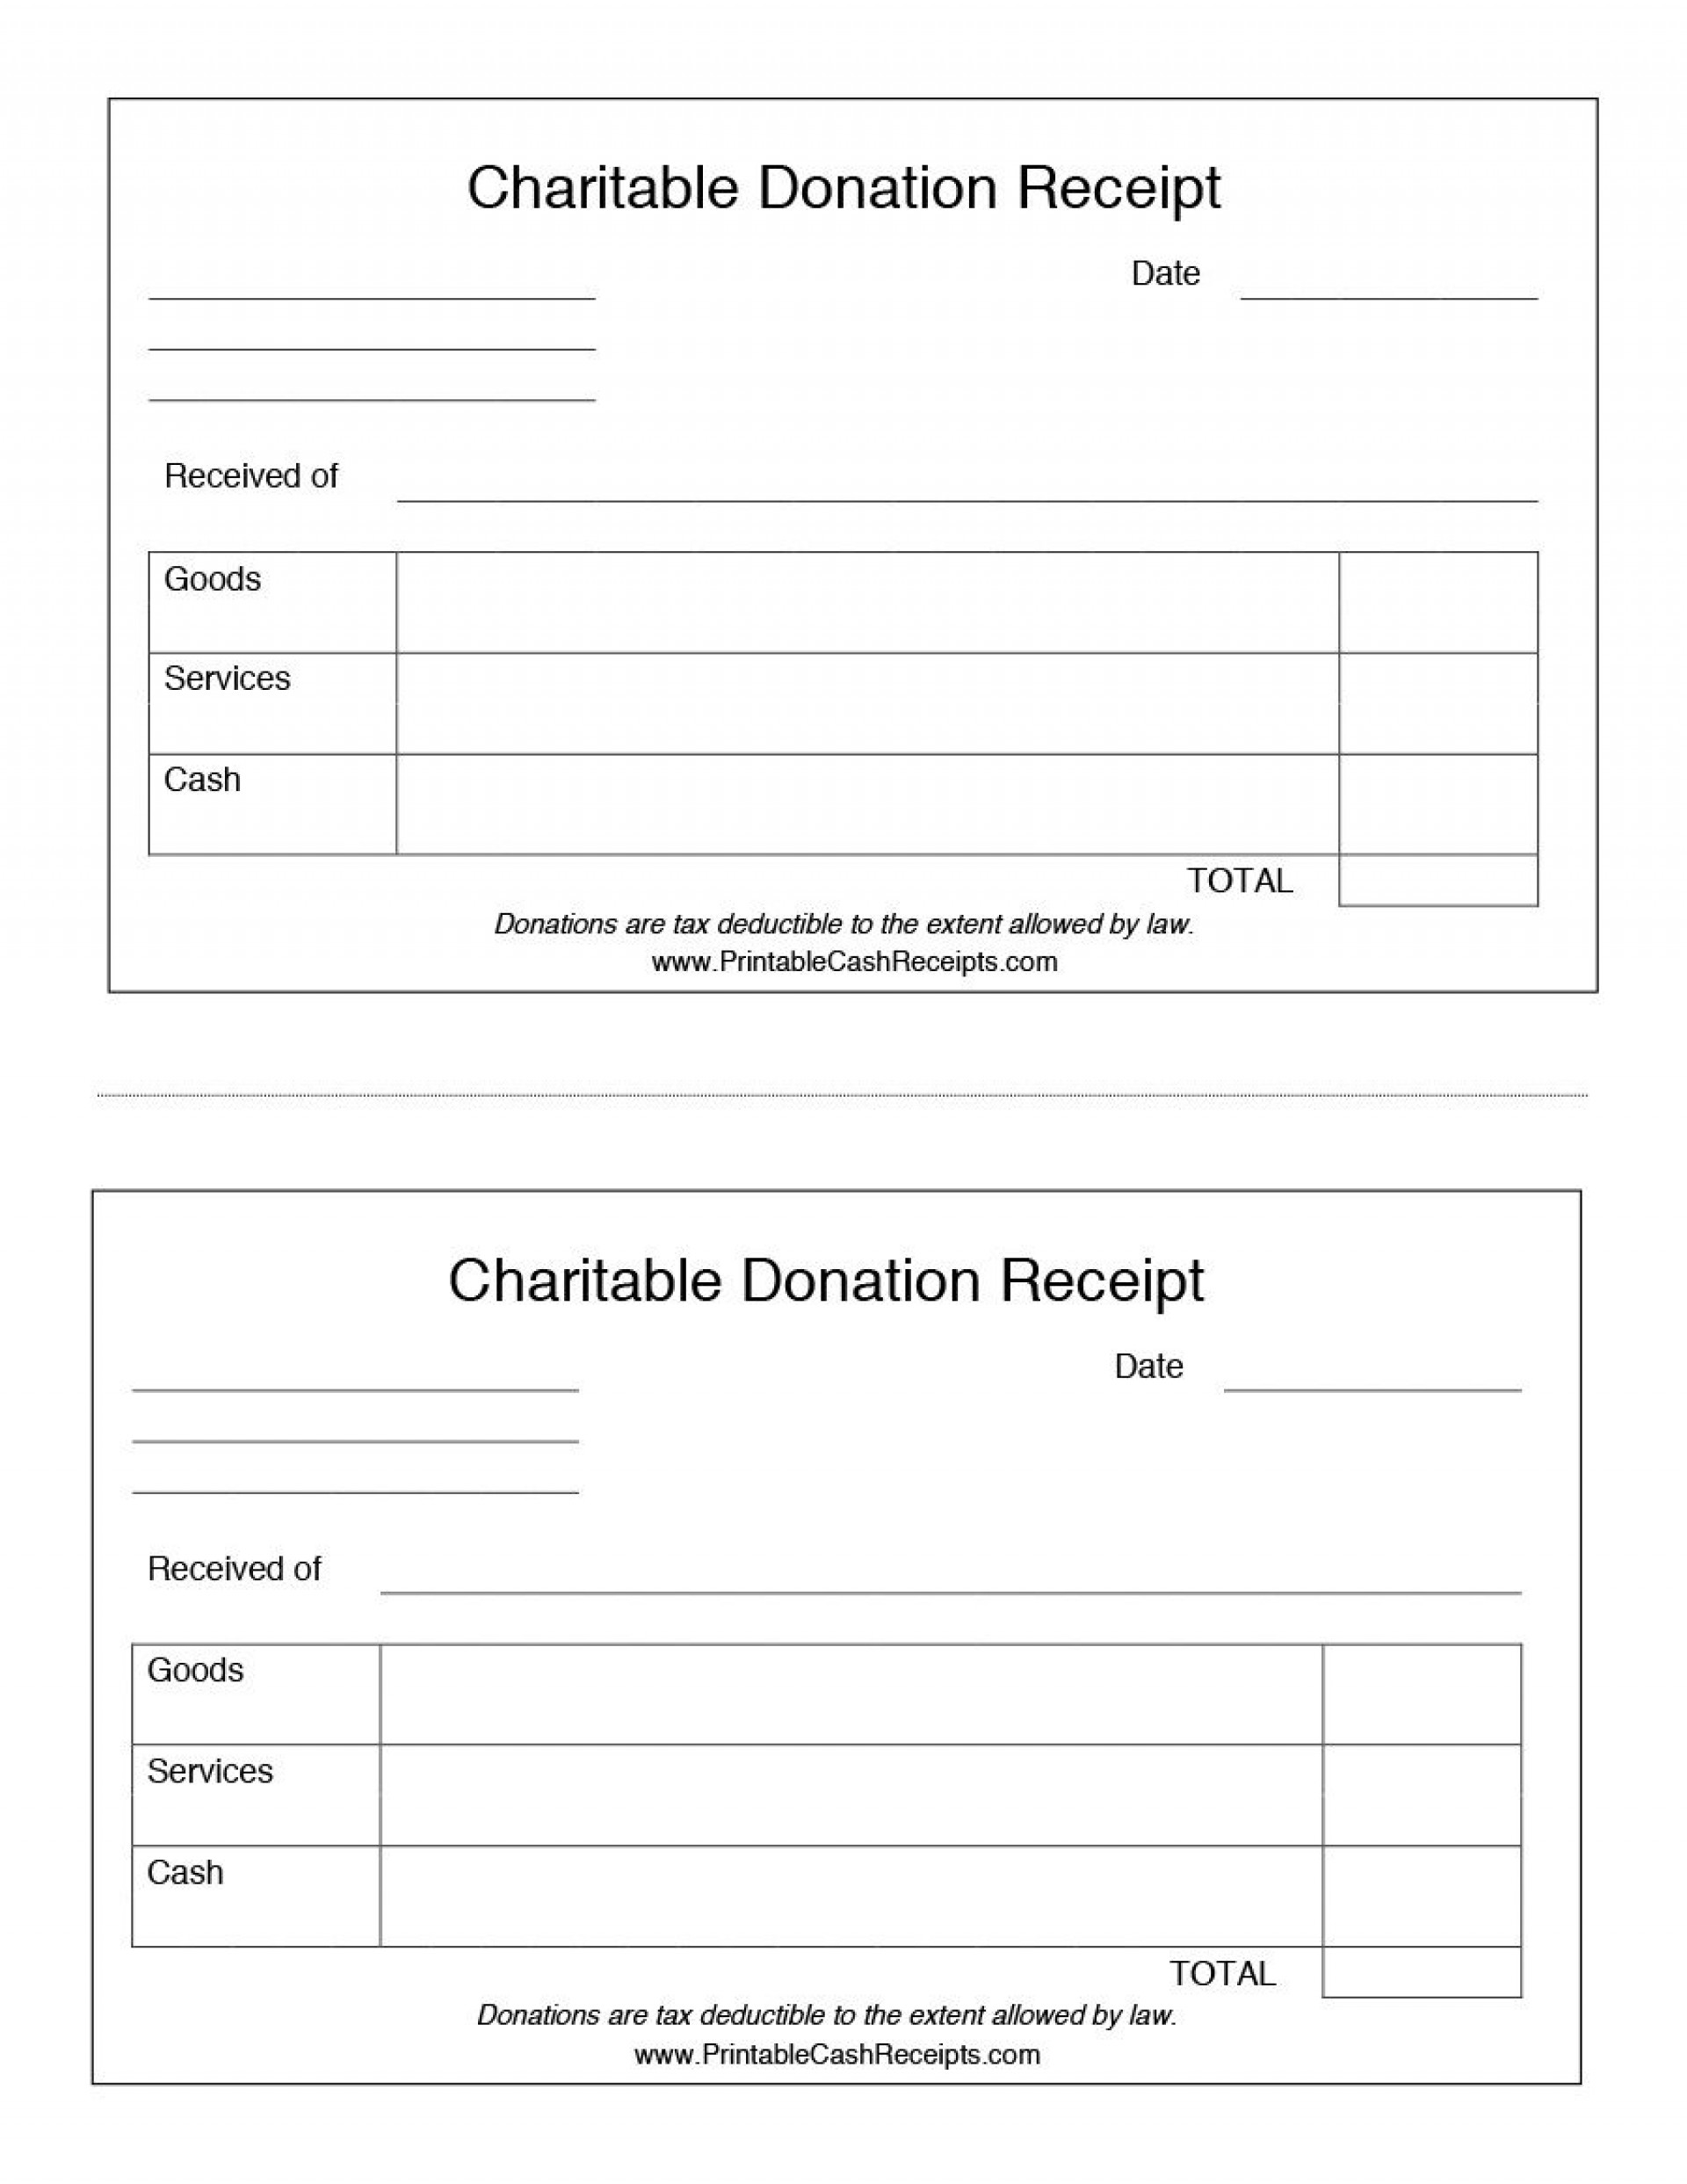 004 Surprising Charitable Contribution Receipt Example Inspiration  Donation Tax Template Sample Letter1920